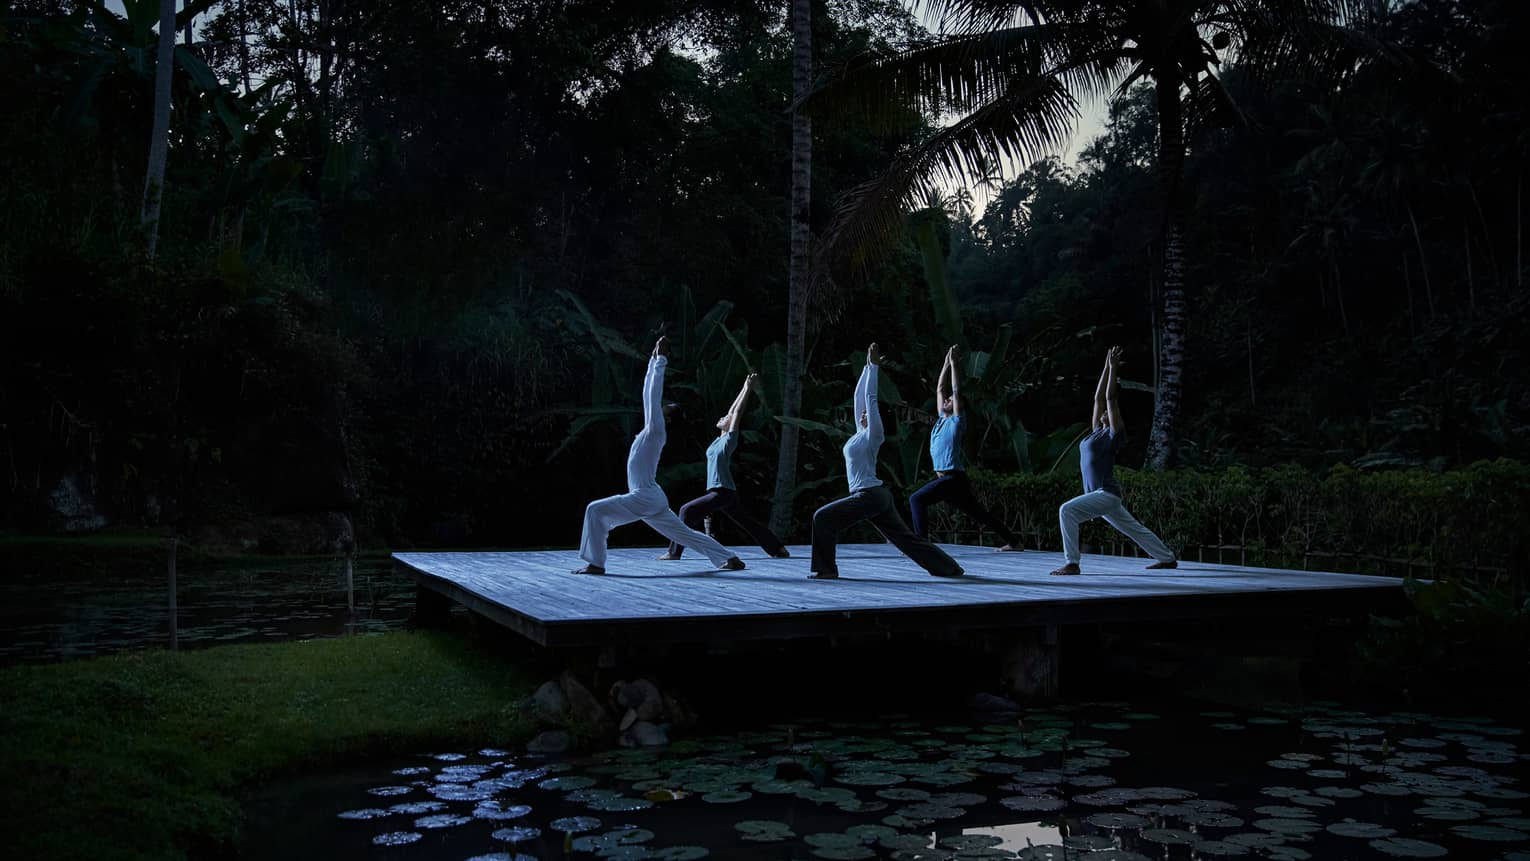 Five people kneel in yoga pose with arms above head on wood platform in forest at night